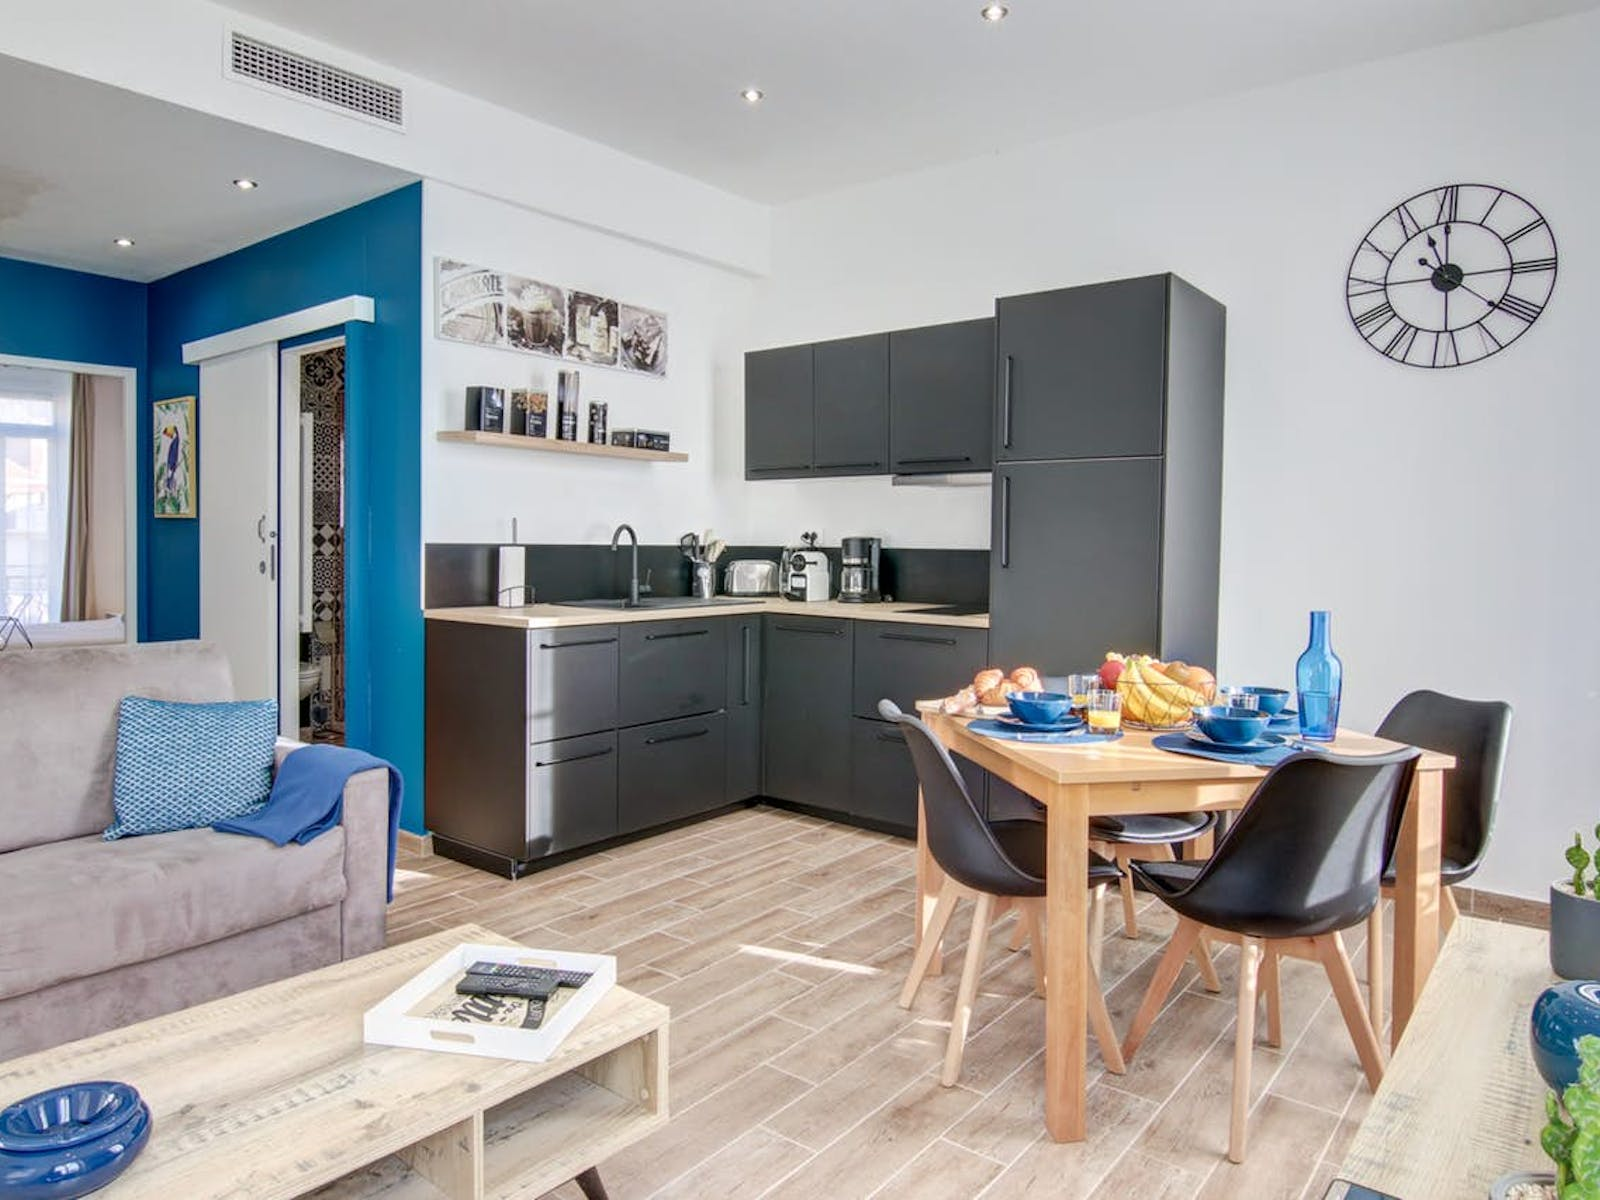 interior of vacation rental located in Cannes, France